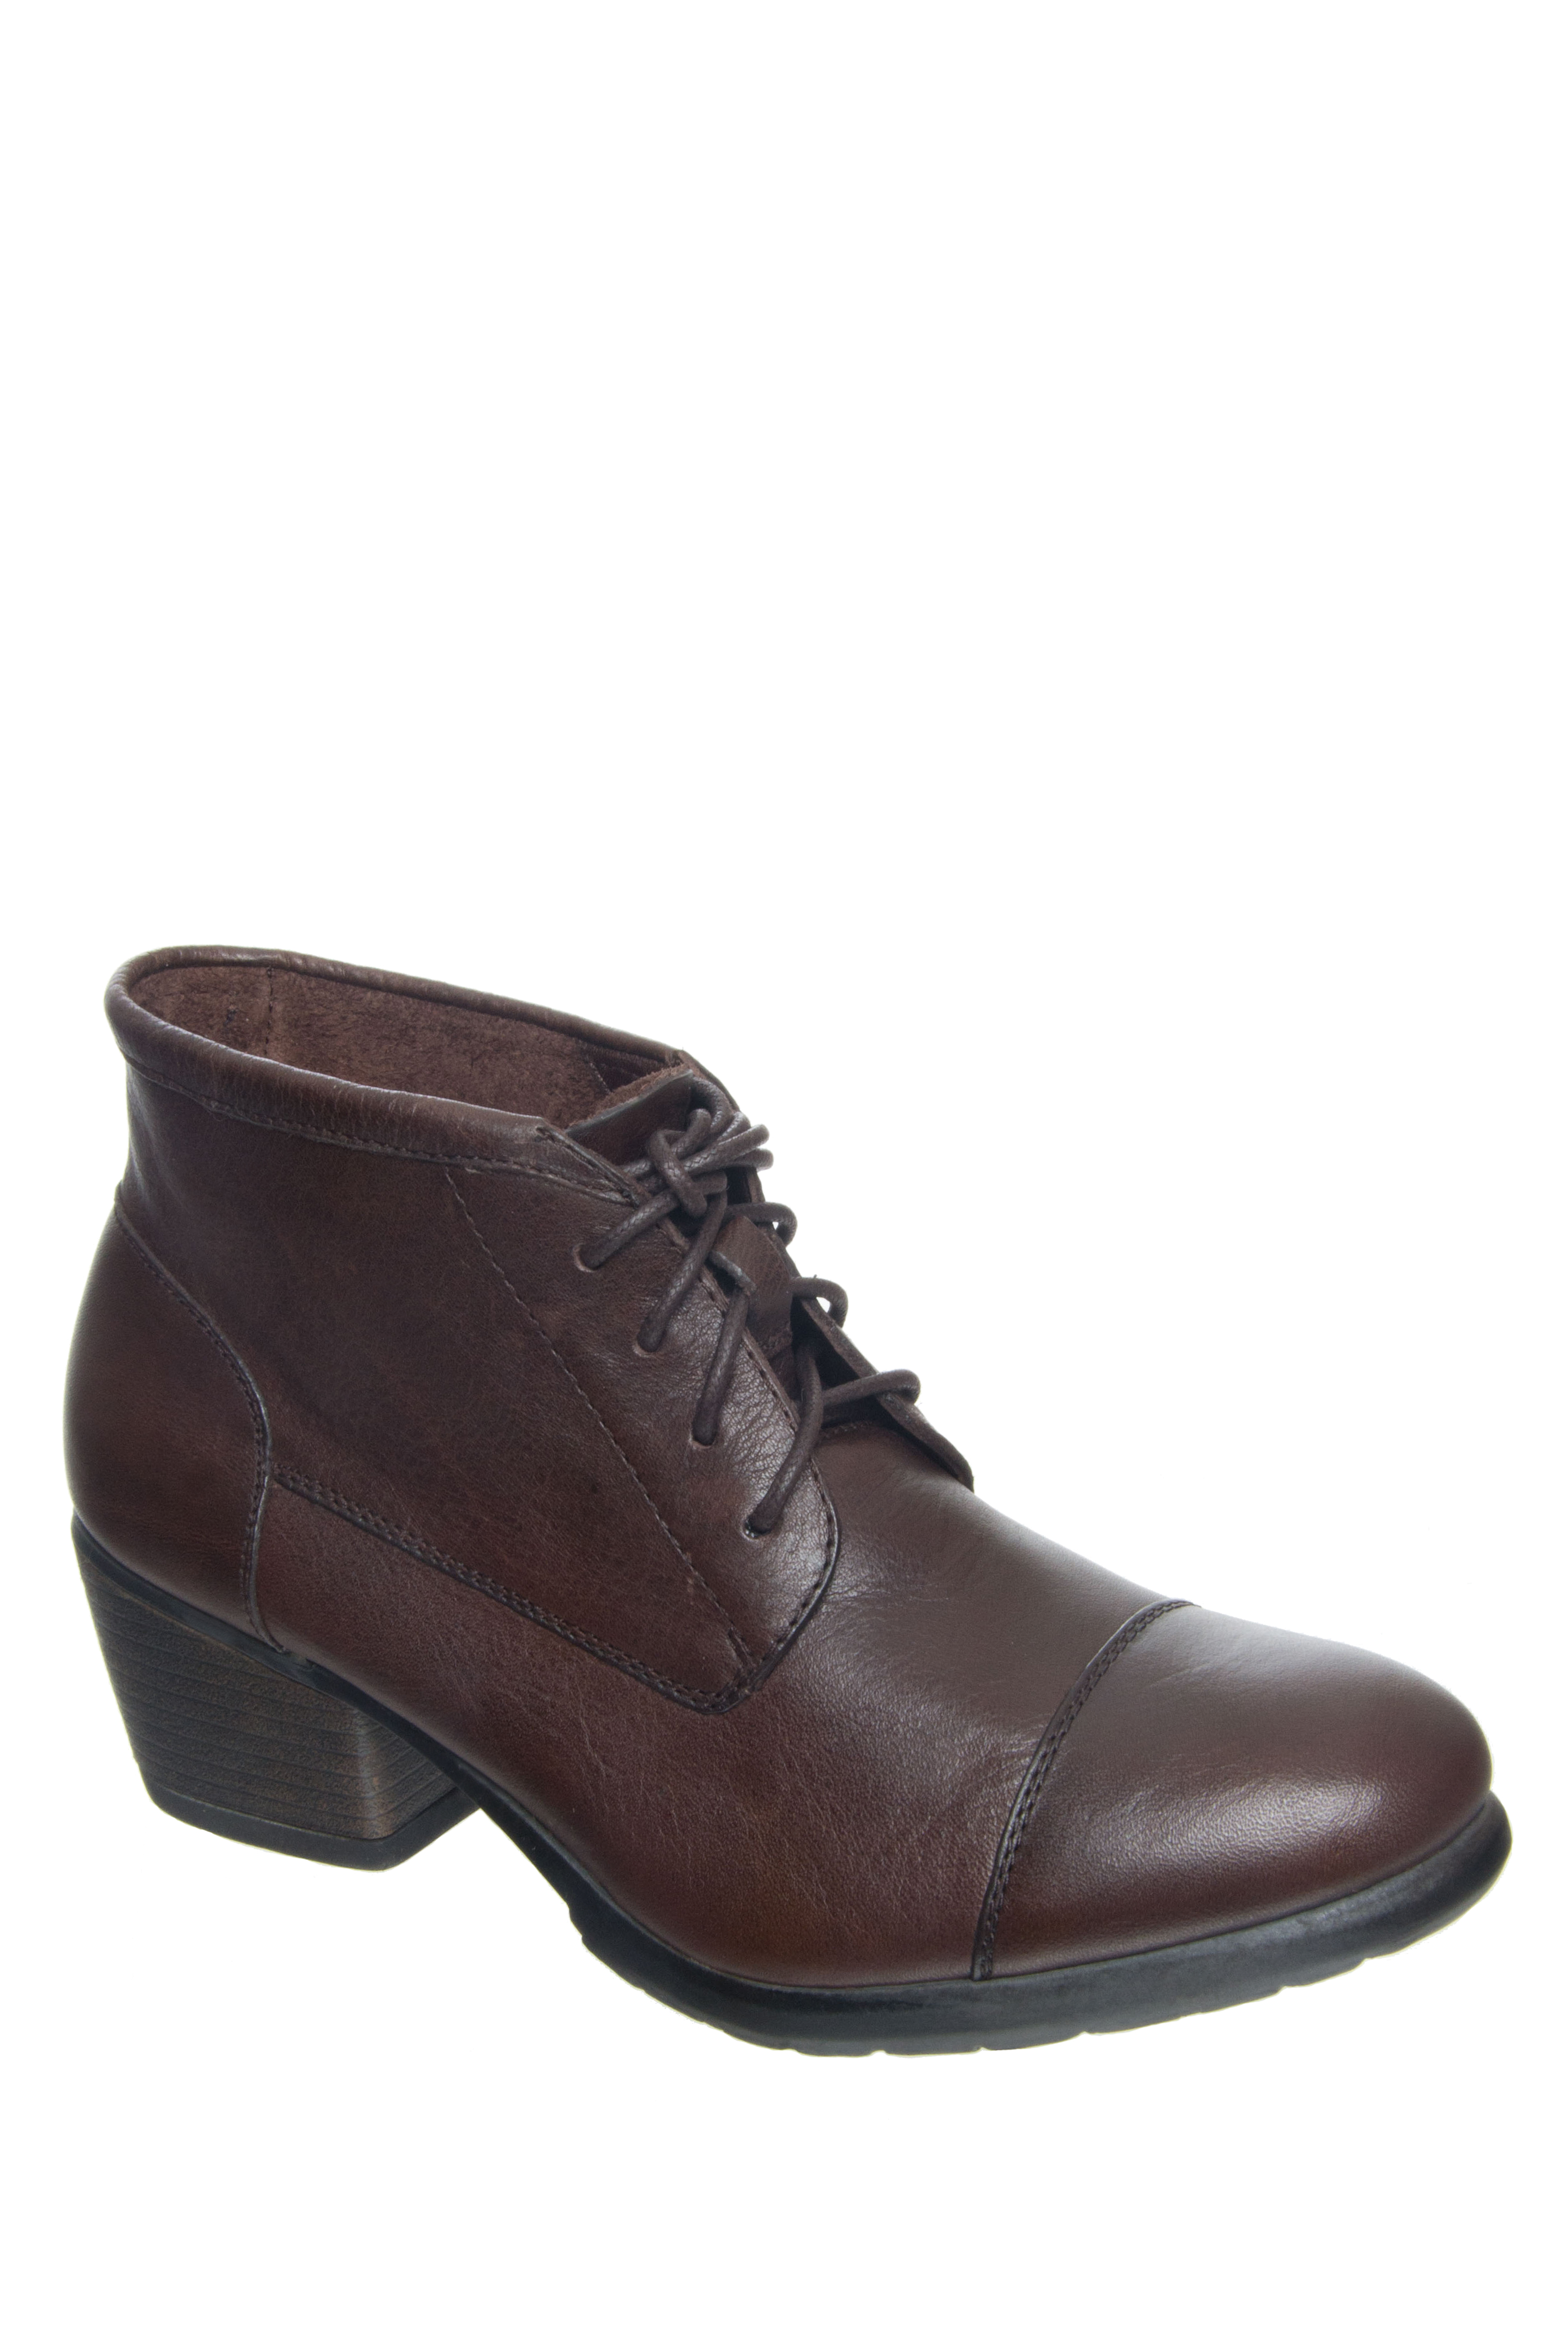 Eastland Alexa Lace Up Booties - Brown